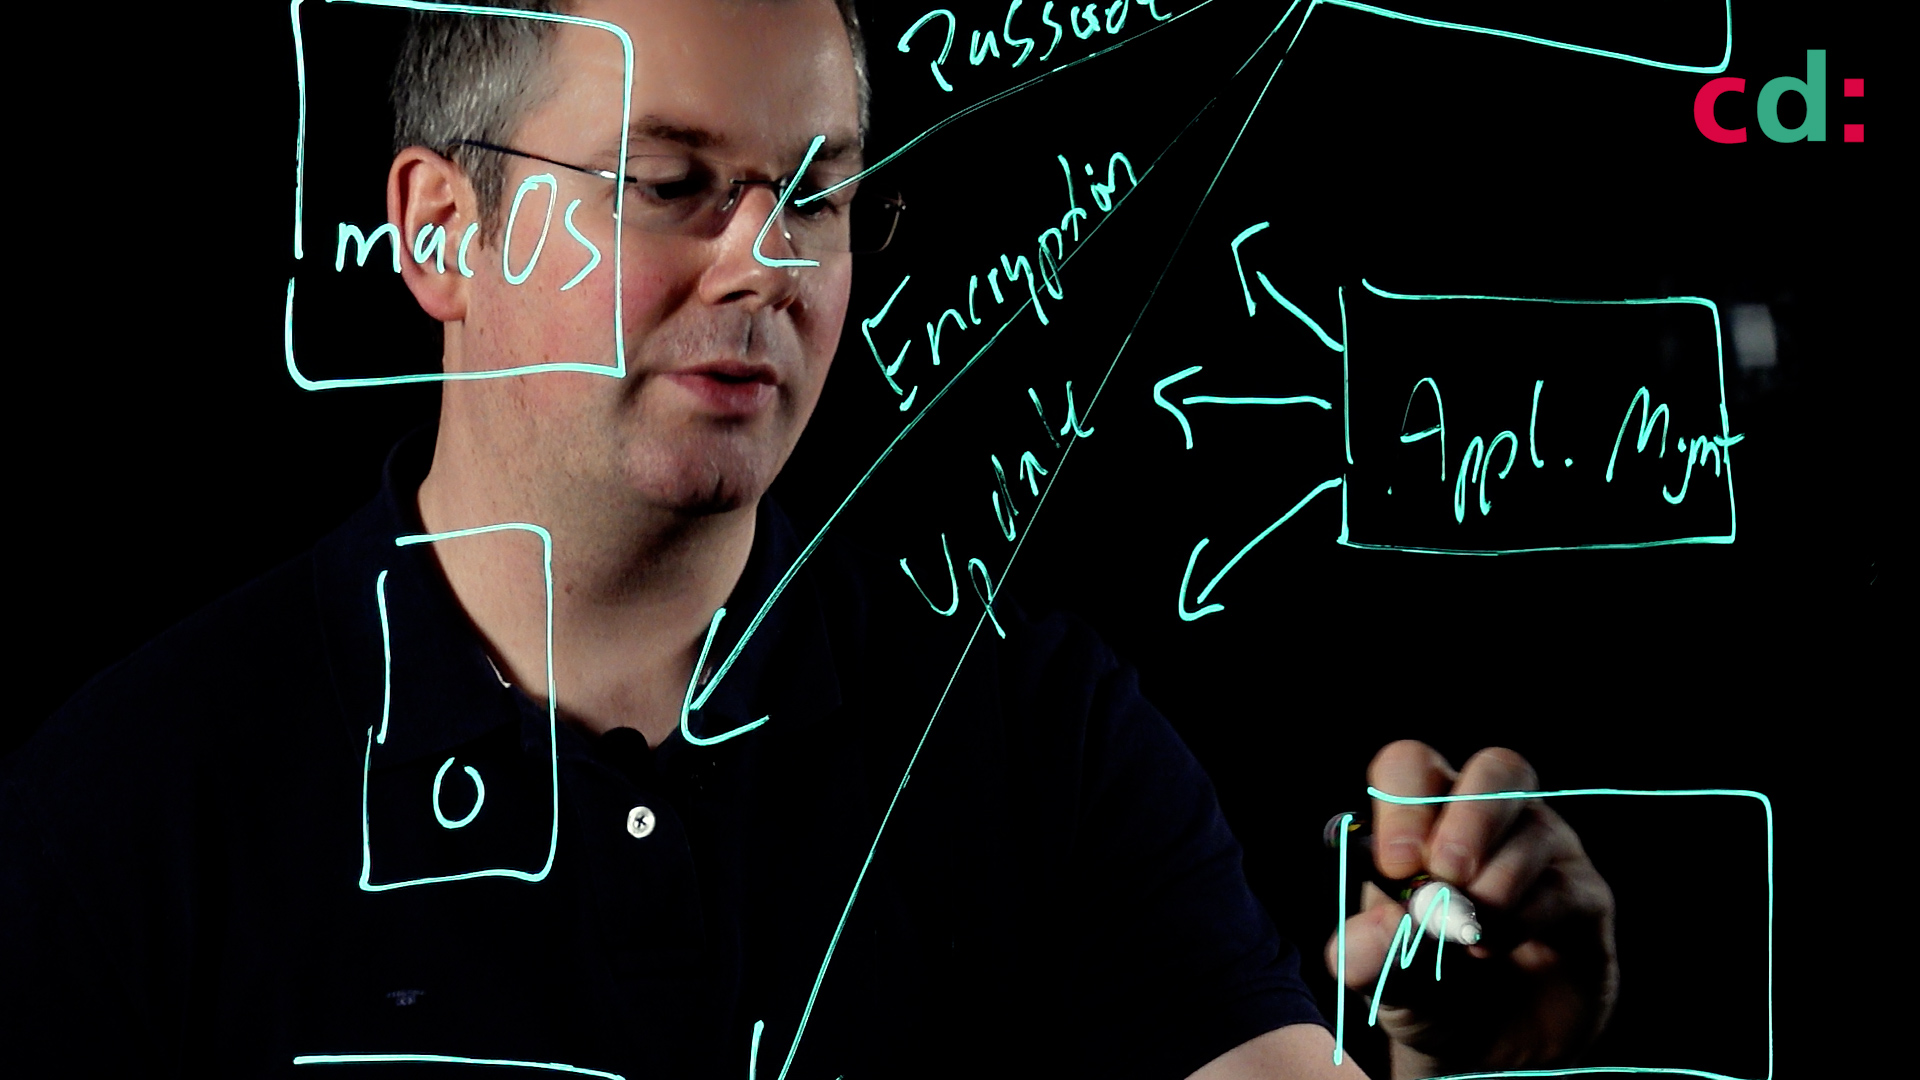 Workspace ONE - Mobile Device Management Lightboard